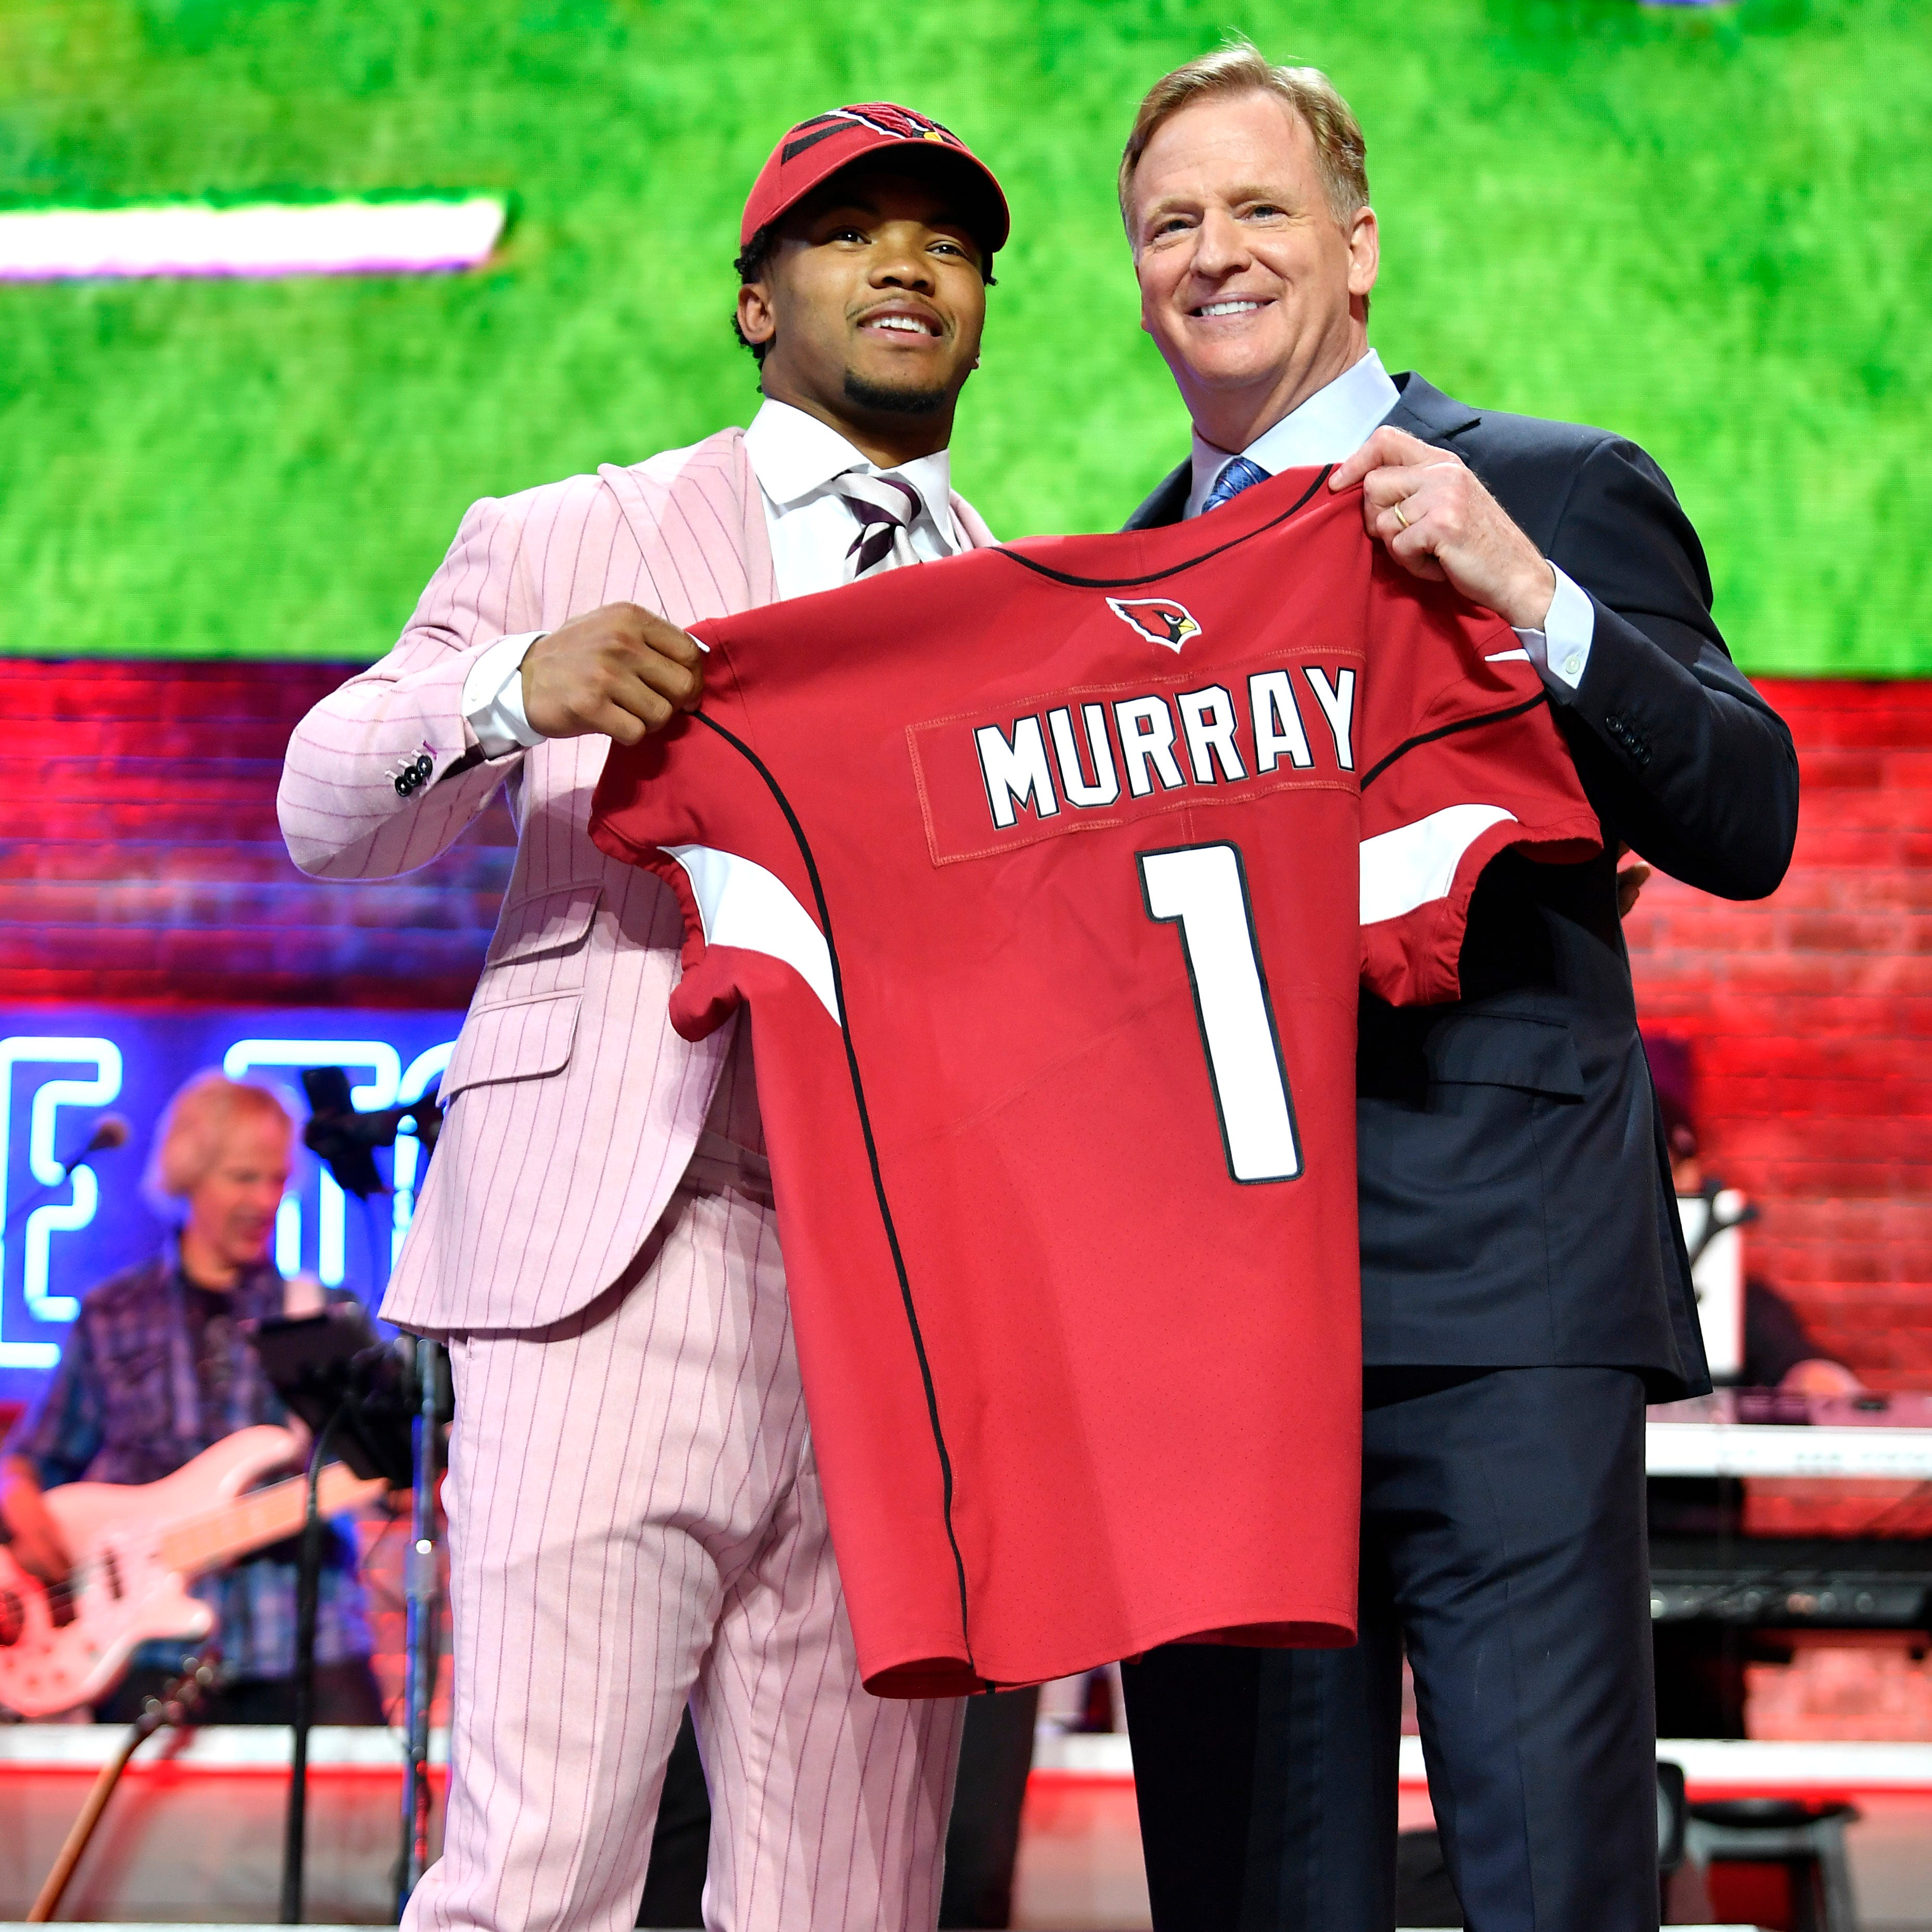 NFL Draft 2019: First round picks, live instant grades, trades, updates